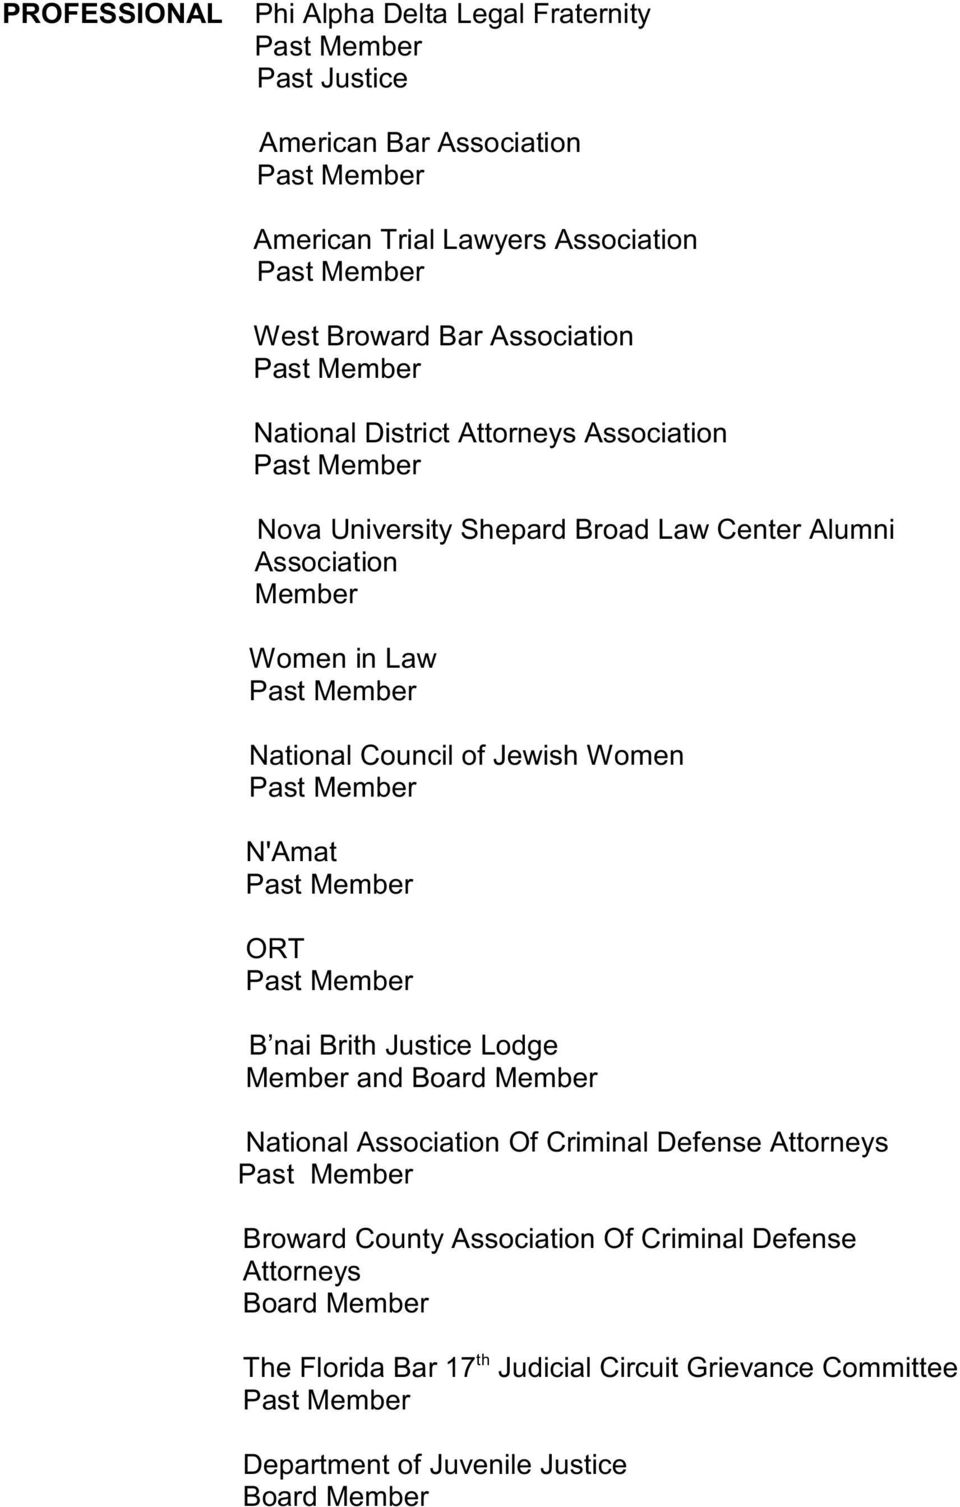 Council of Jewish Women N'Amat ORT B nai Brith Justice Lodge Member and Board Member National Association Of Criminal Defense Attorneys Broward